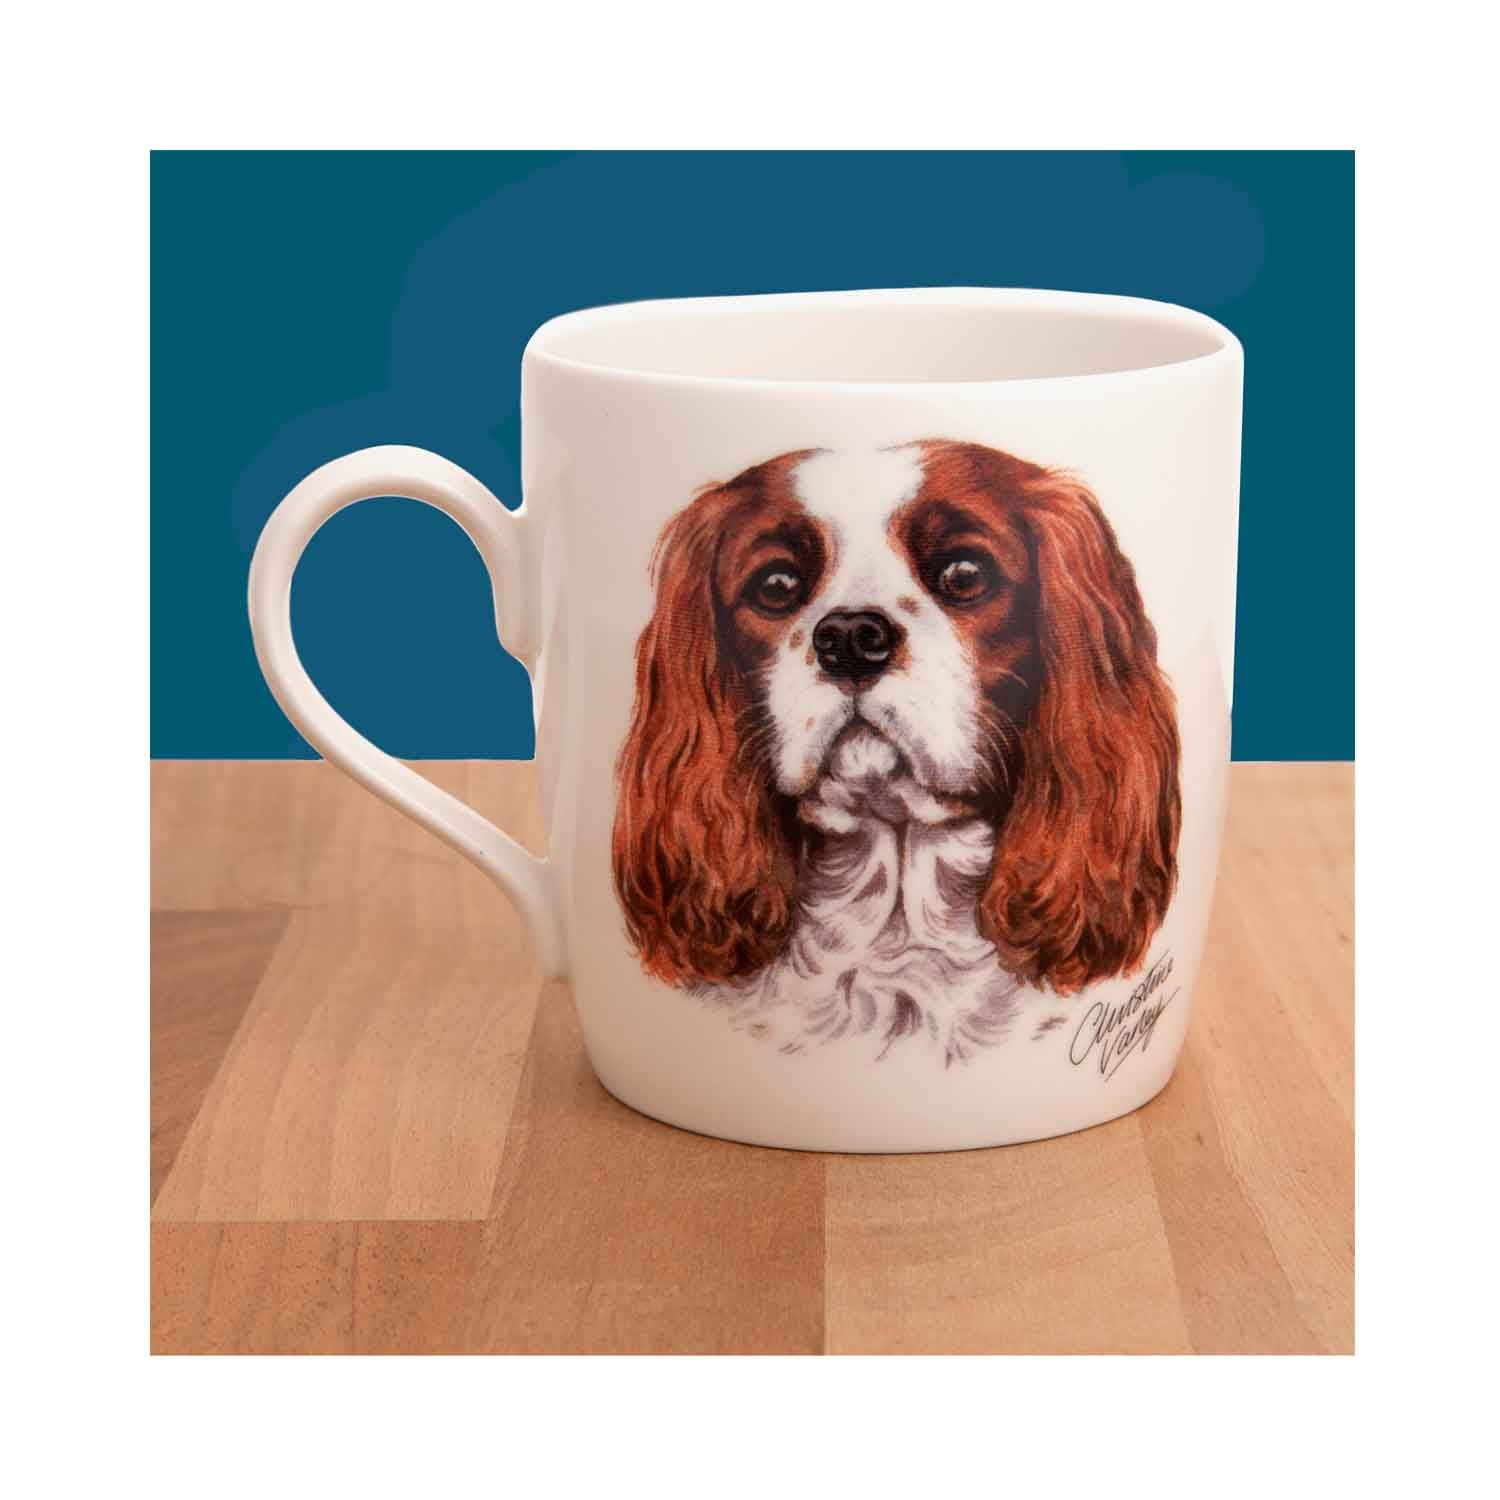 Dog Lover Gifts available at Dog Krazy Gifts - Cavalier King Charles Waggy Dogz Mug, part of the range of Spaniel themed gifts available from DogKrazyGifts.co.uk